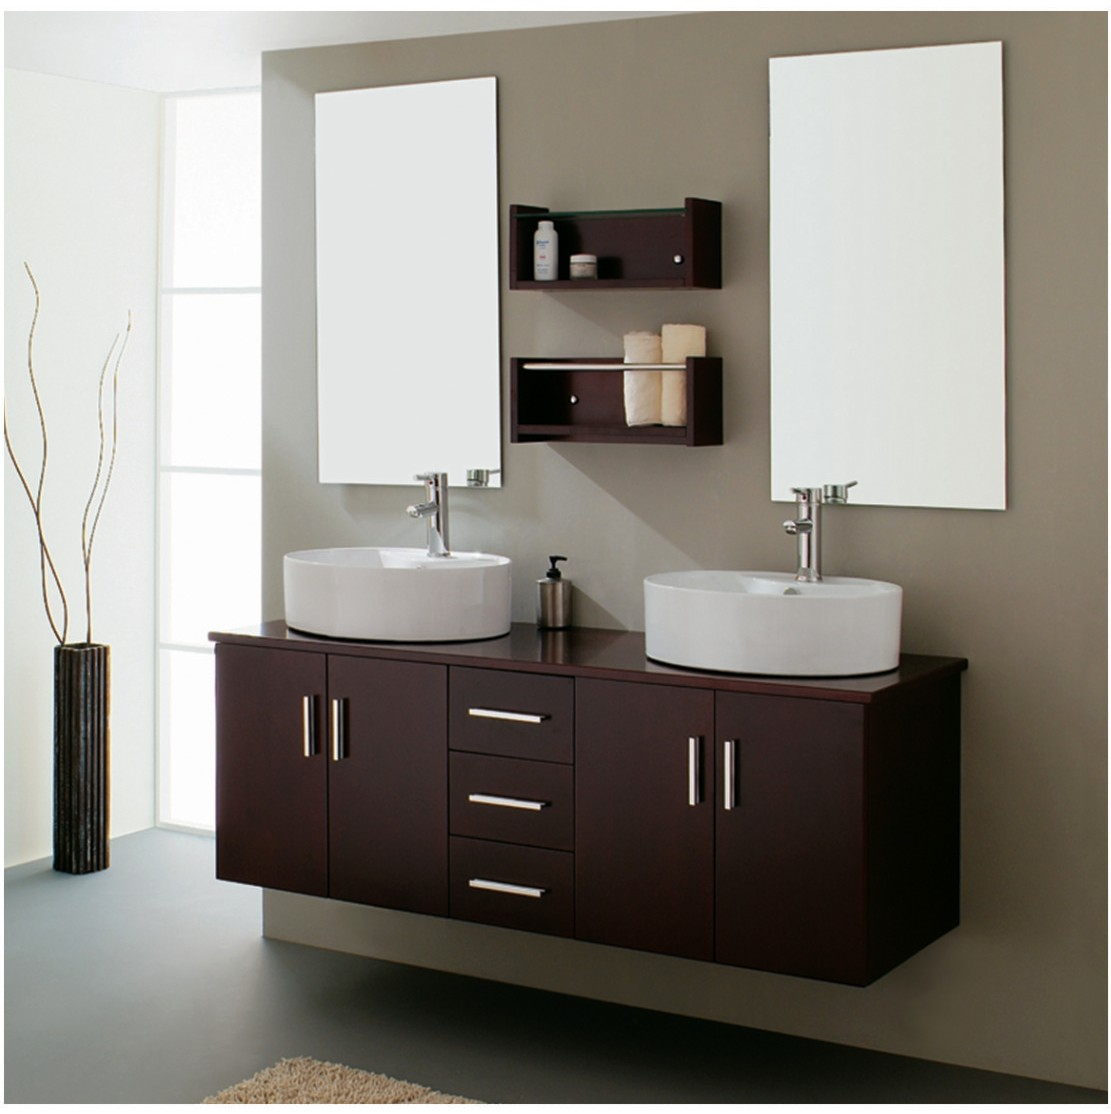 Bathroom Cabinet Designs Photos. If You Are Searching For Bathroom Cabinets  Designs Then Should Search